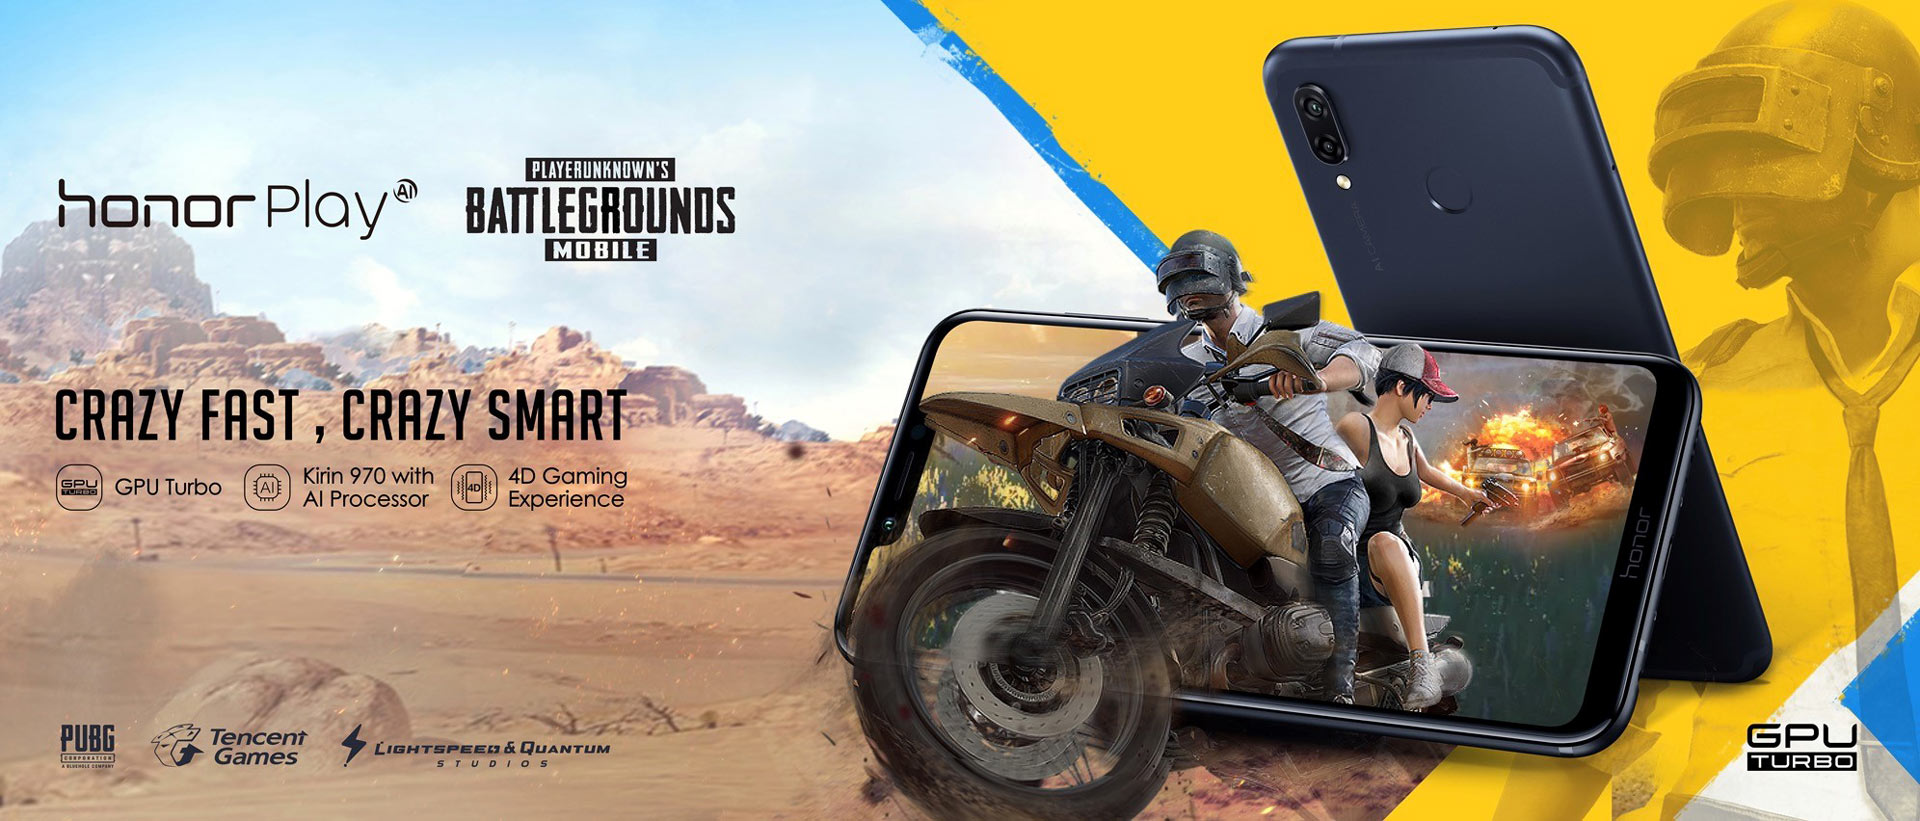 honor play announces joint strategic partnership with top mobile games pubg mobile and asphalt 9 legends